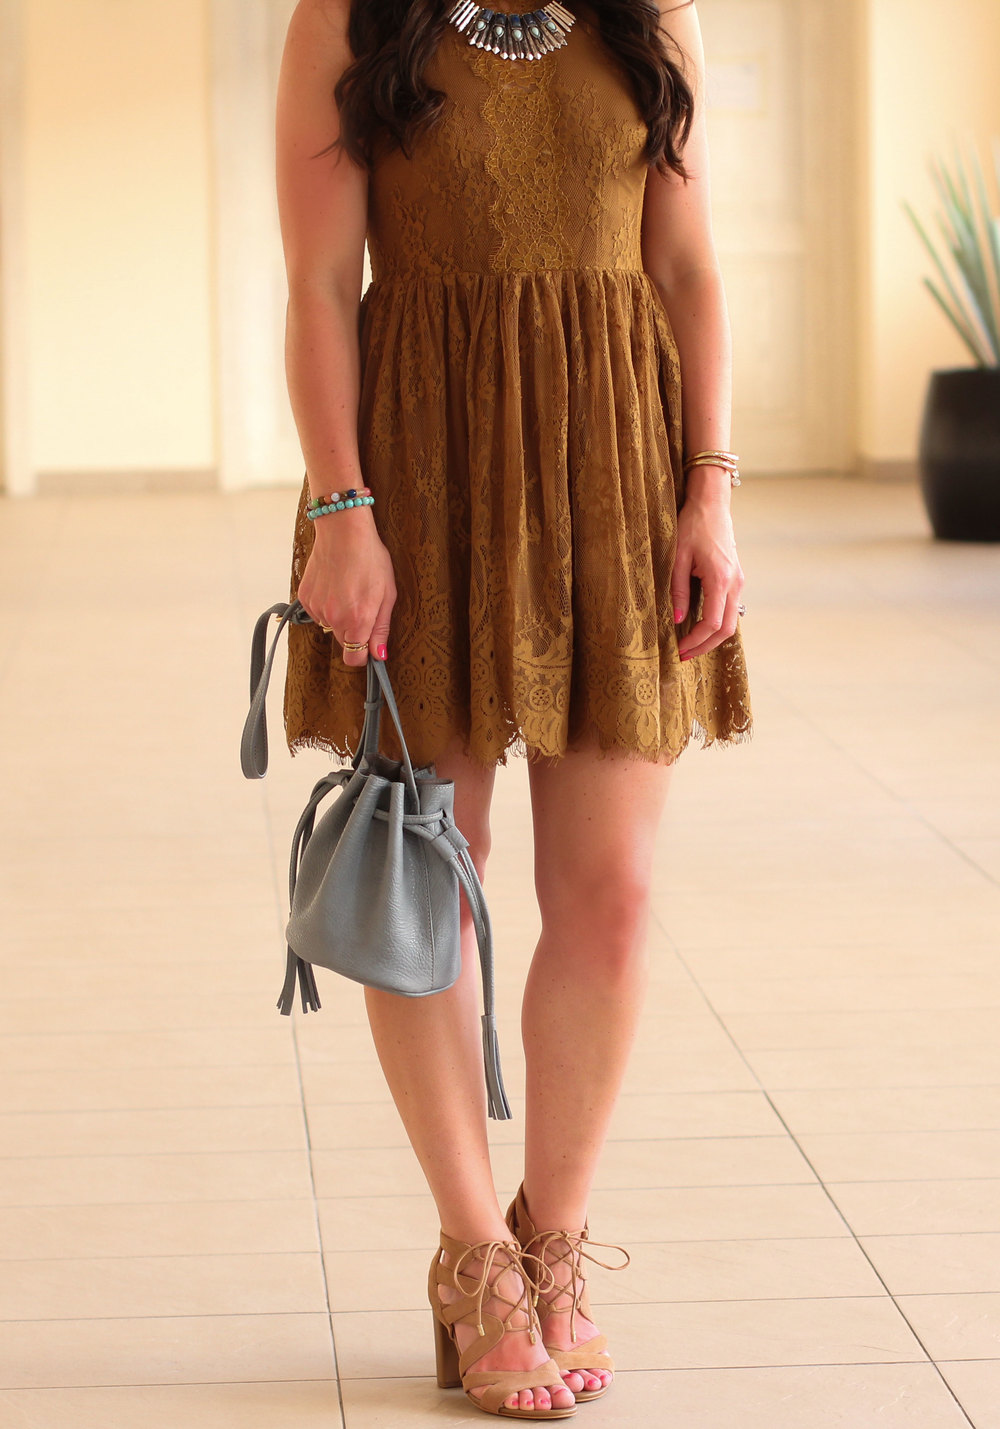 Vacation Outfit, Free People Verushka Mini Dress, Sam Edelman Yardley Lace-Up Sandals, Turquoise Necklace, Chambray Bucket Bag (Less than $50!)